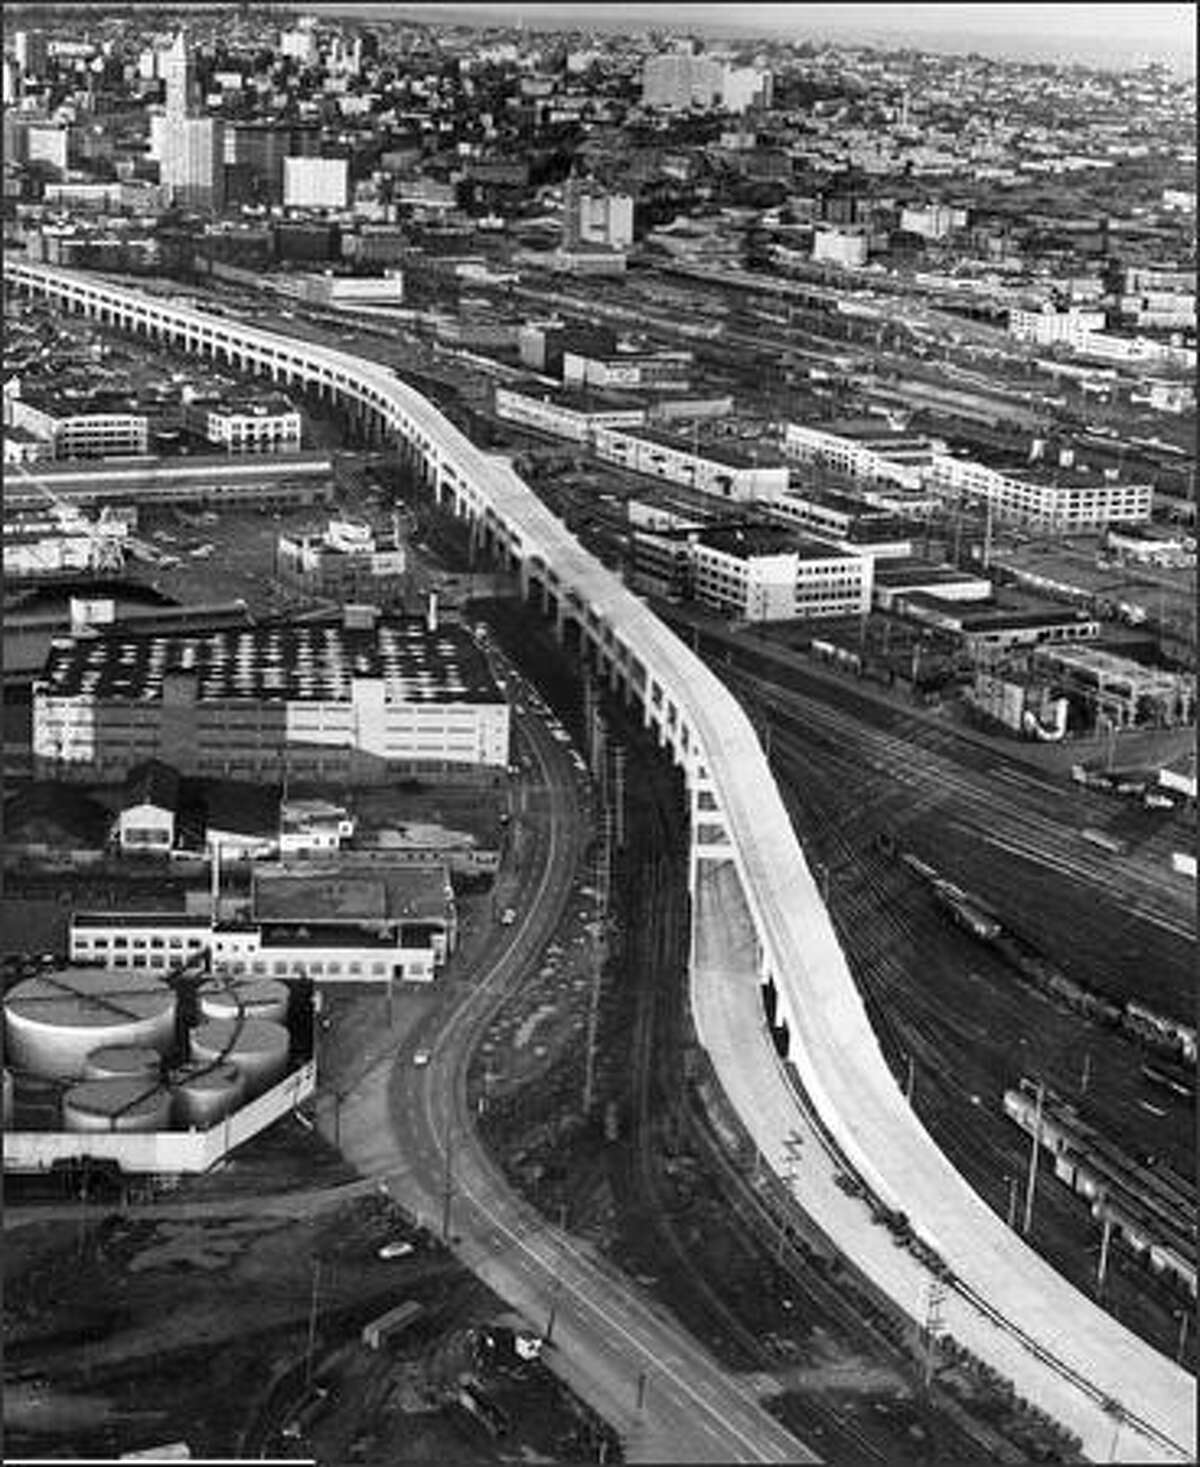 In November 1958, the Alaskan Way Viaduct was nearly complete.